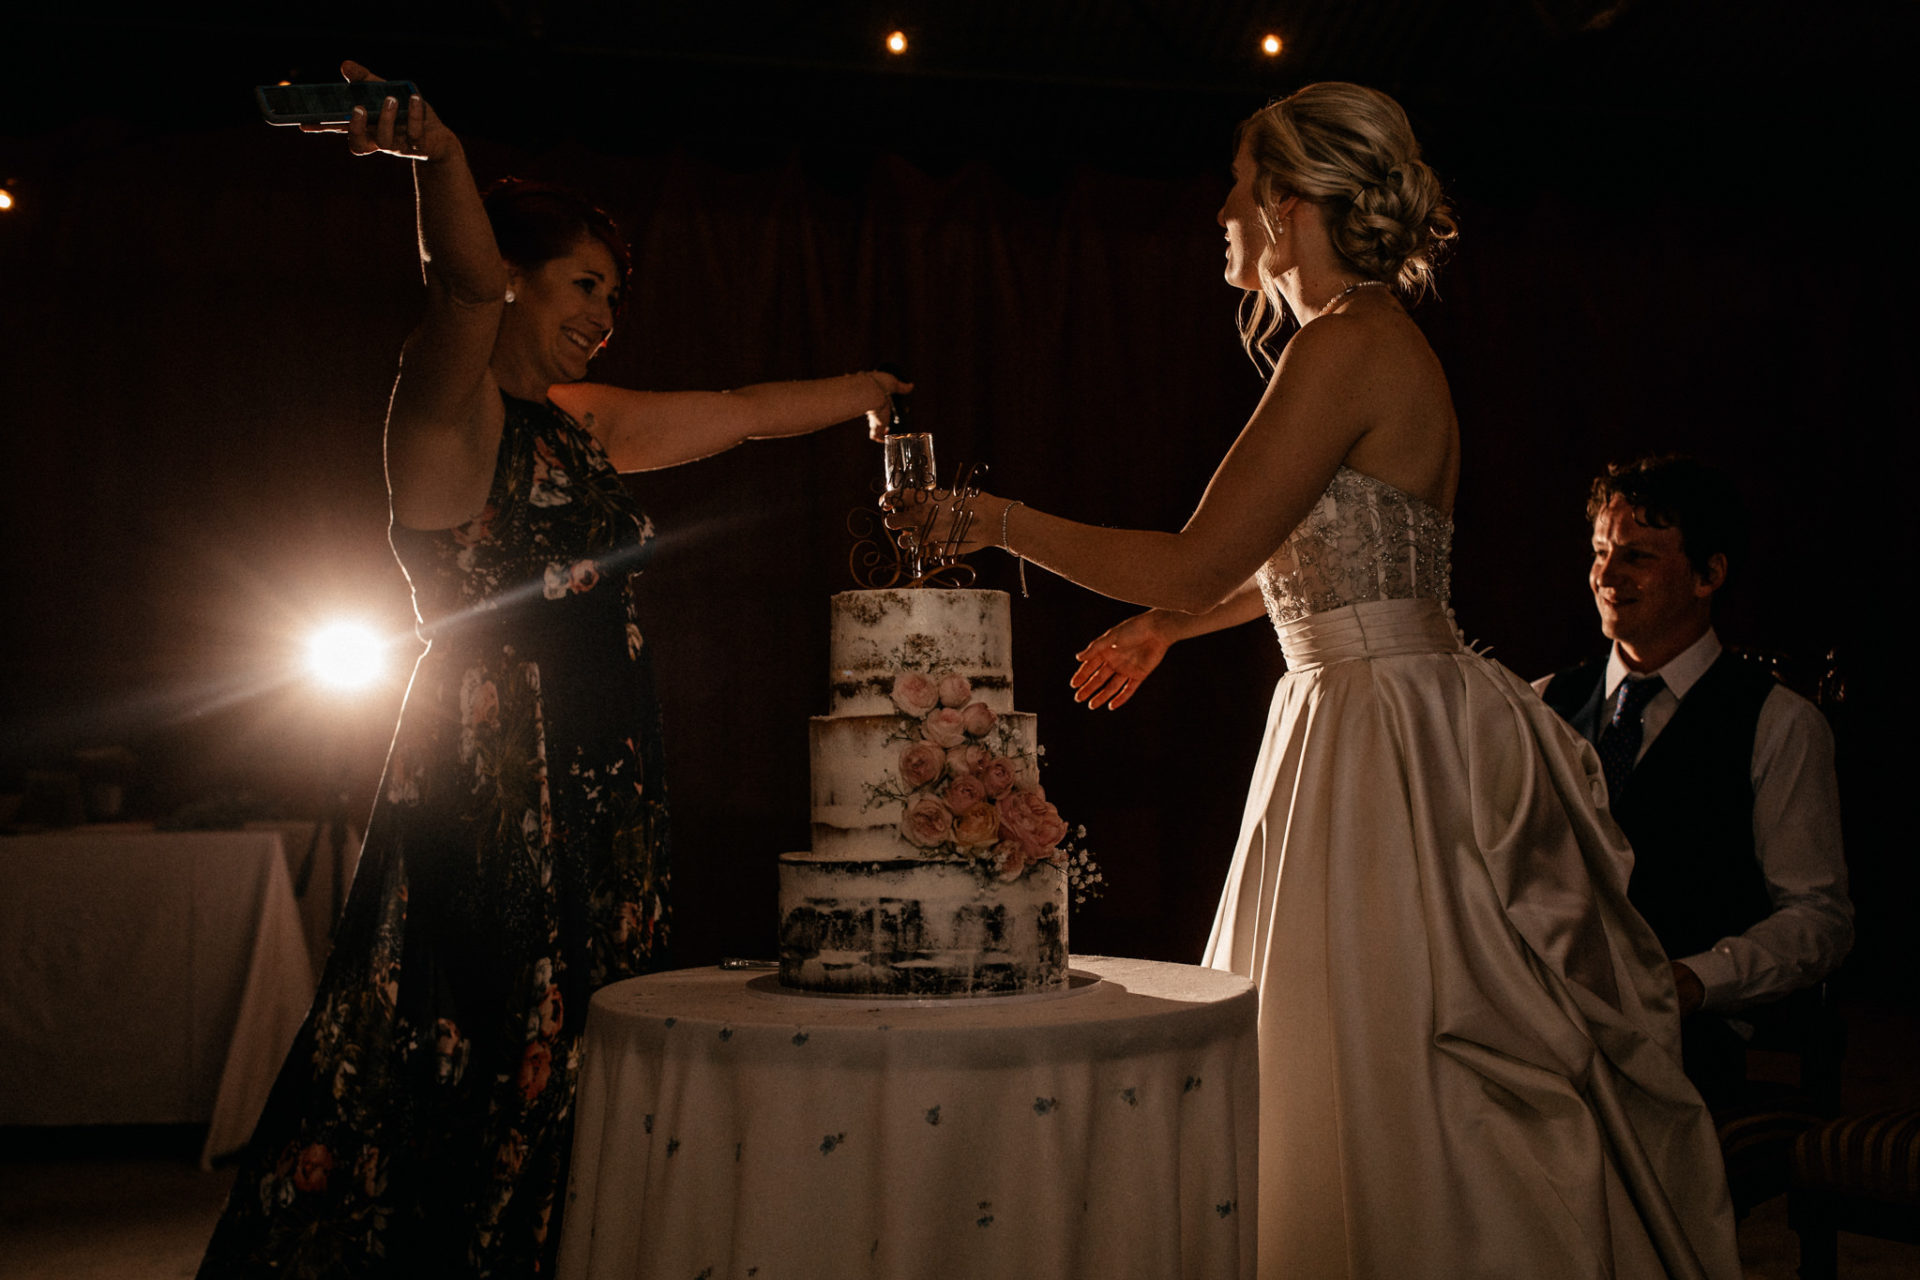 backyard-wedding-australia-melbourne-bride-bridesmaid-speeches-hug-wedding-cake